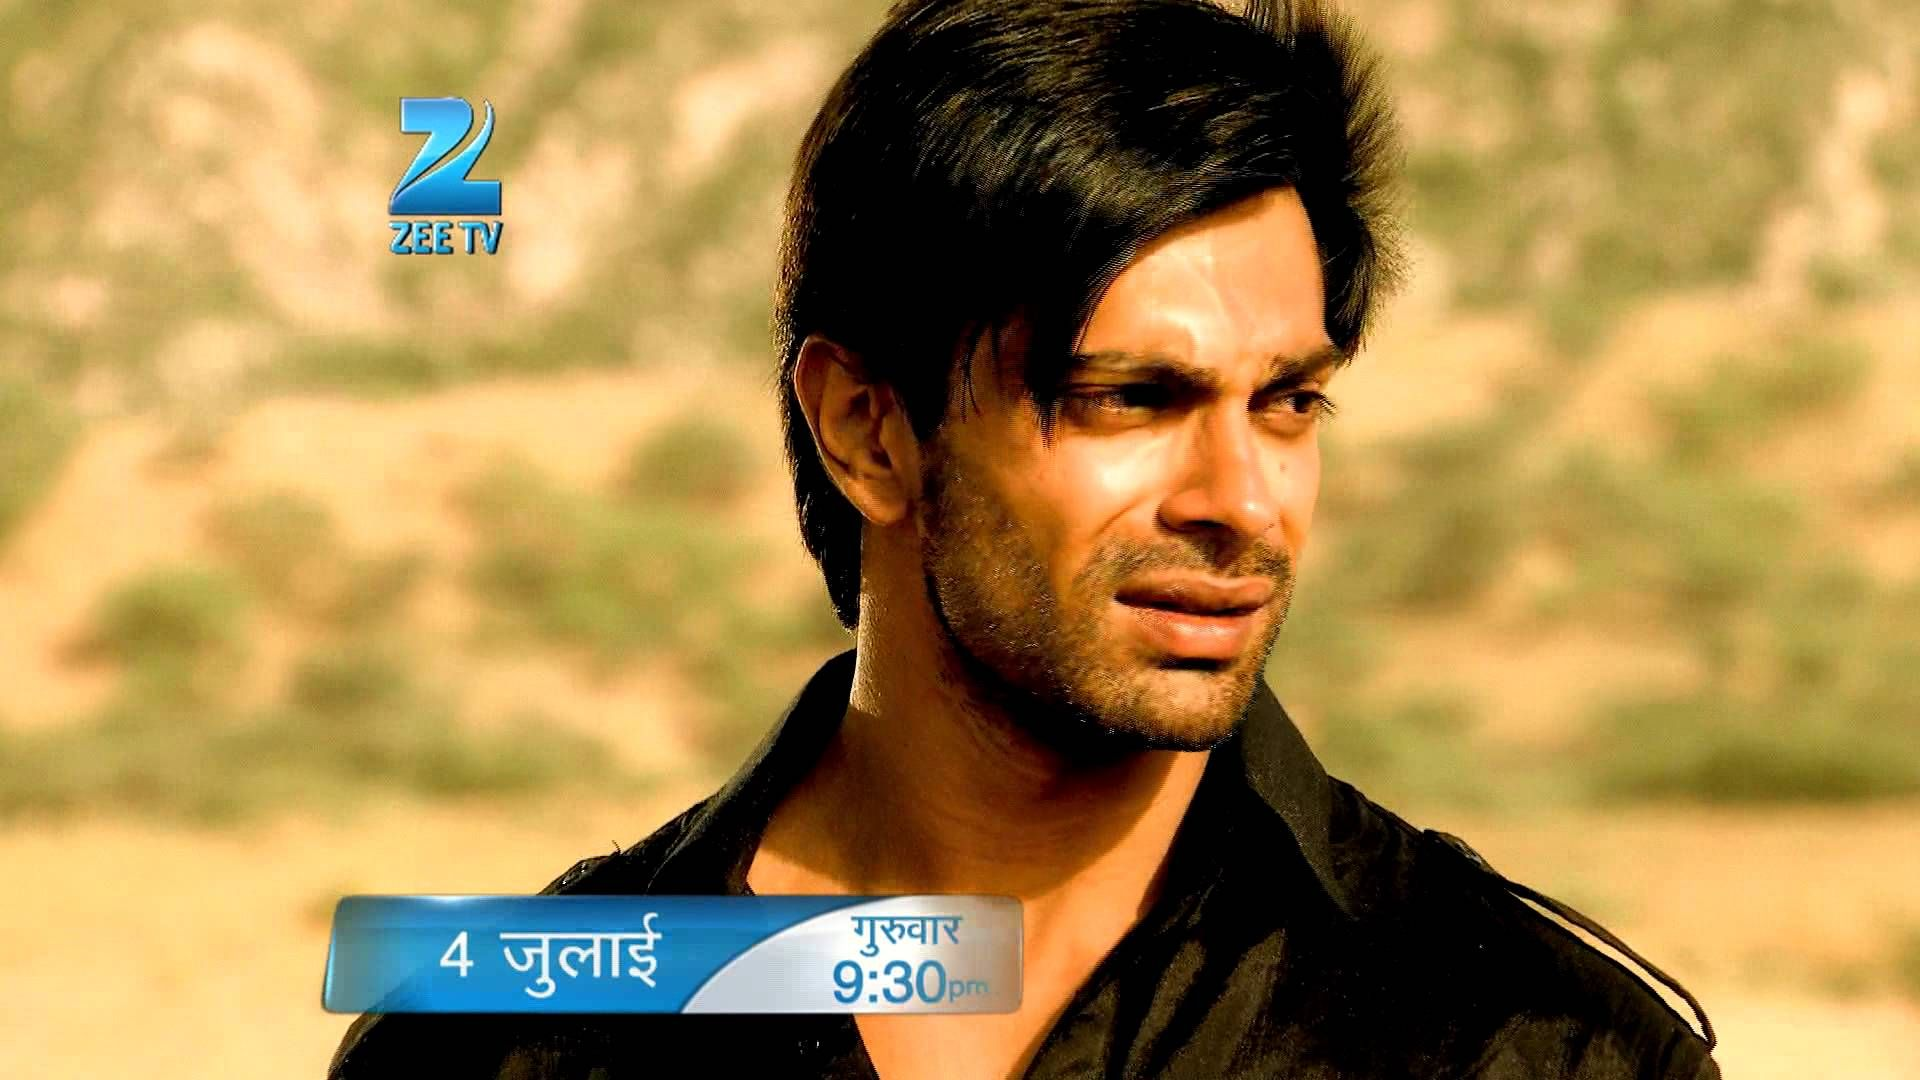 Hd wallpaper qubool hai - Find This Pin And More On All Wallpapers Search Results For Qubool Hai